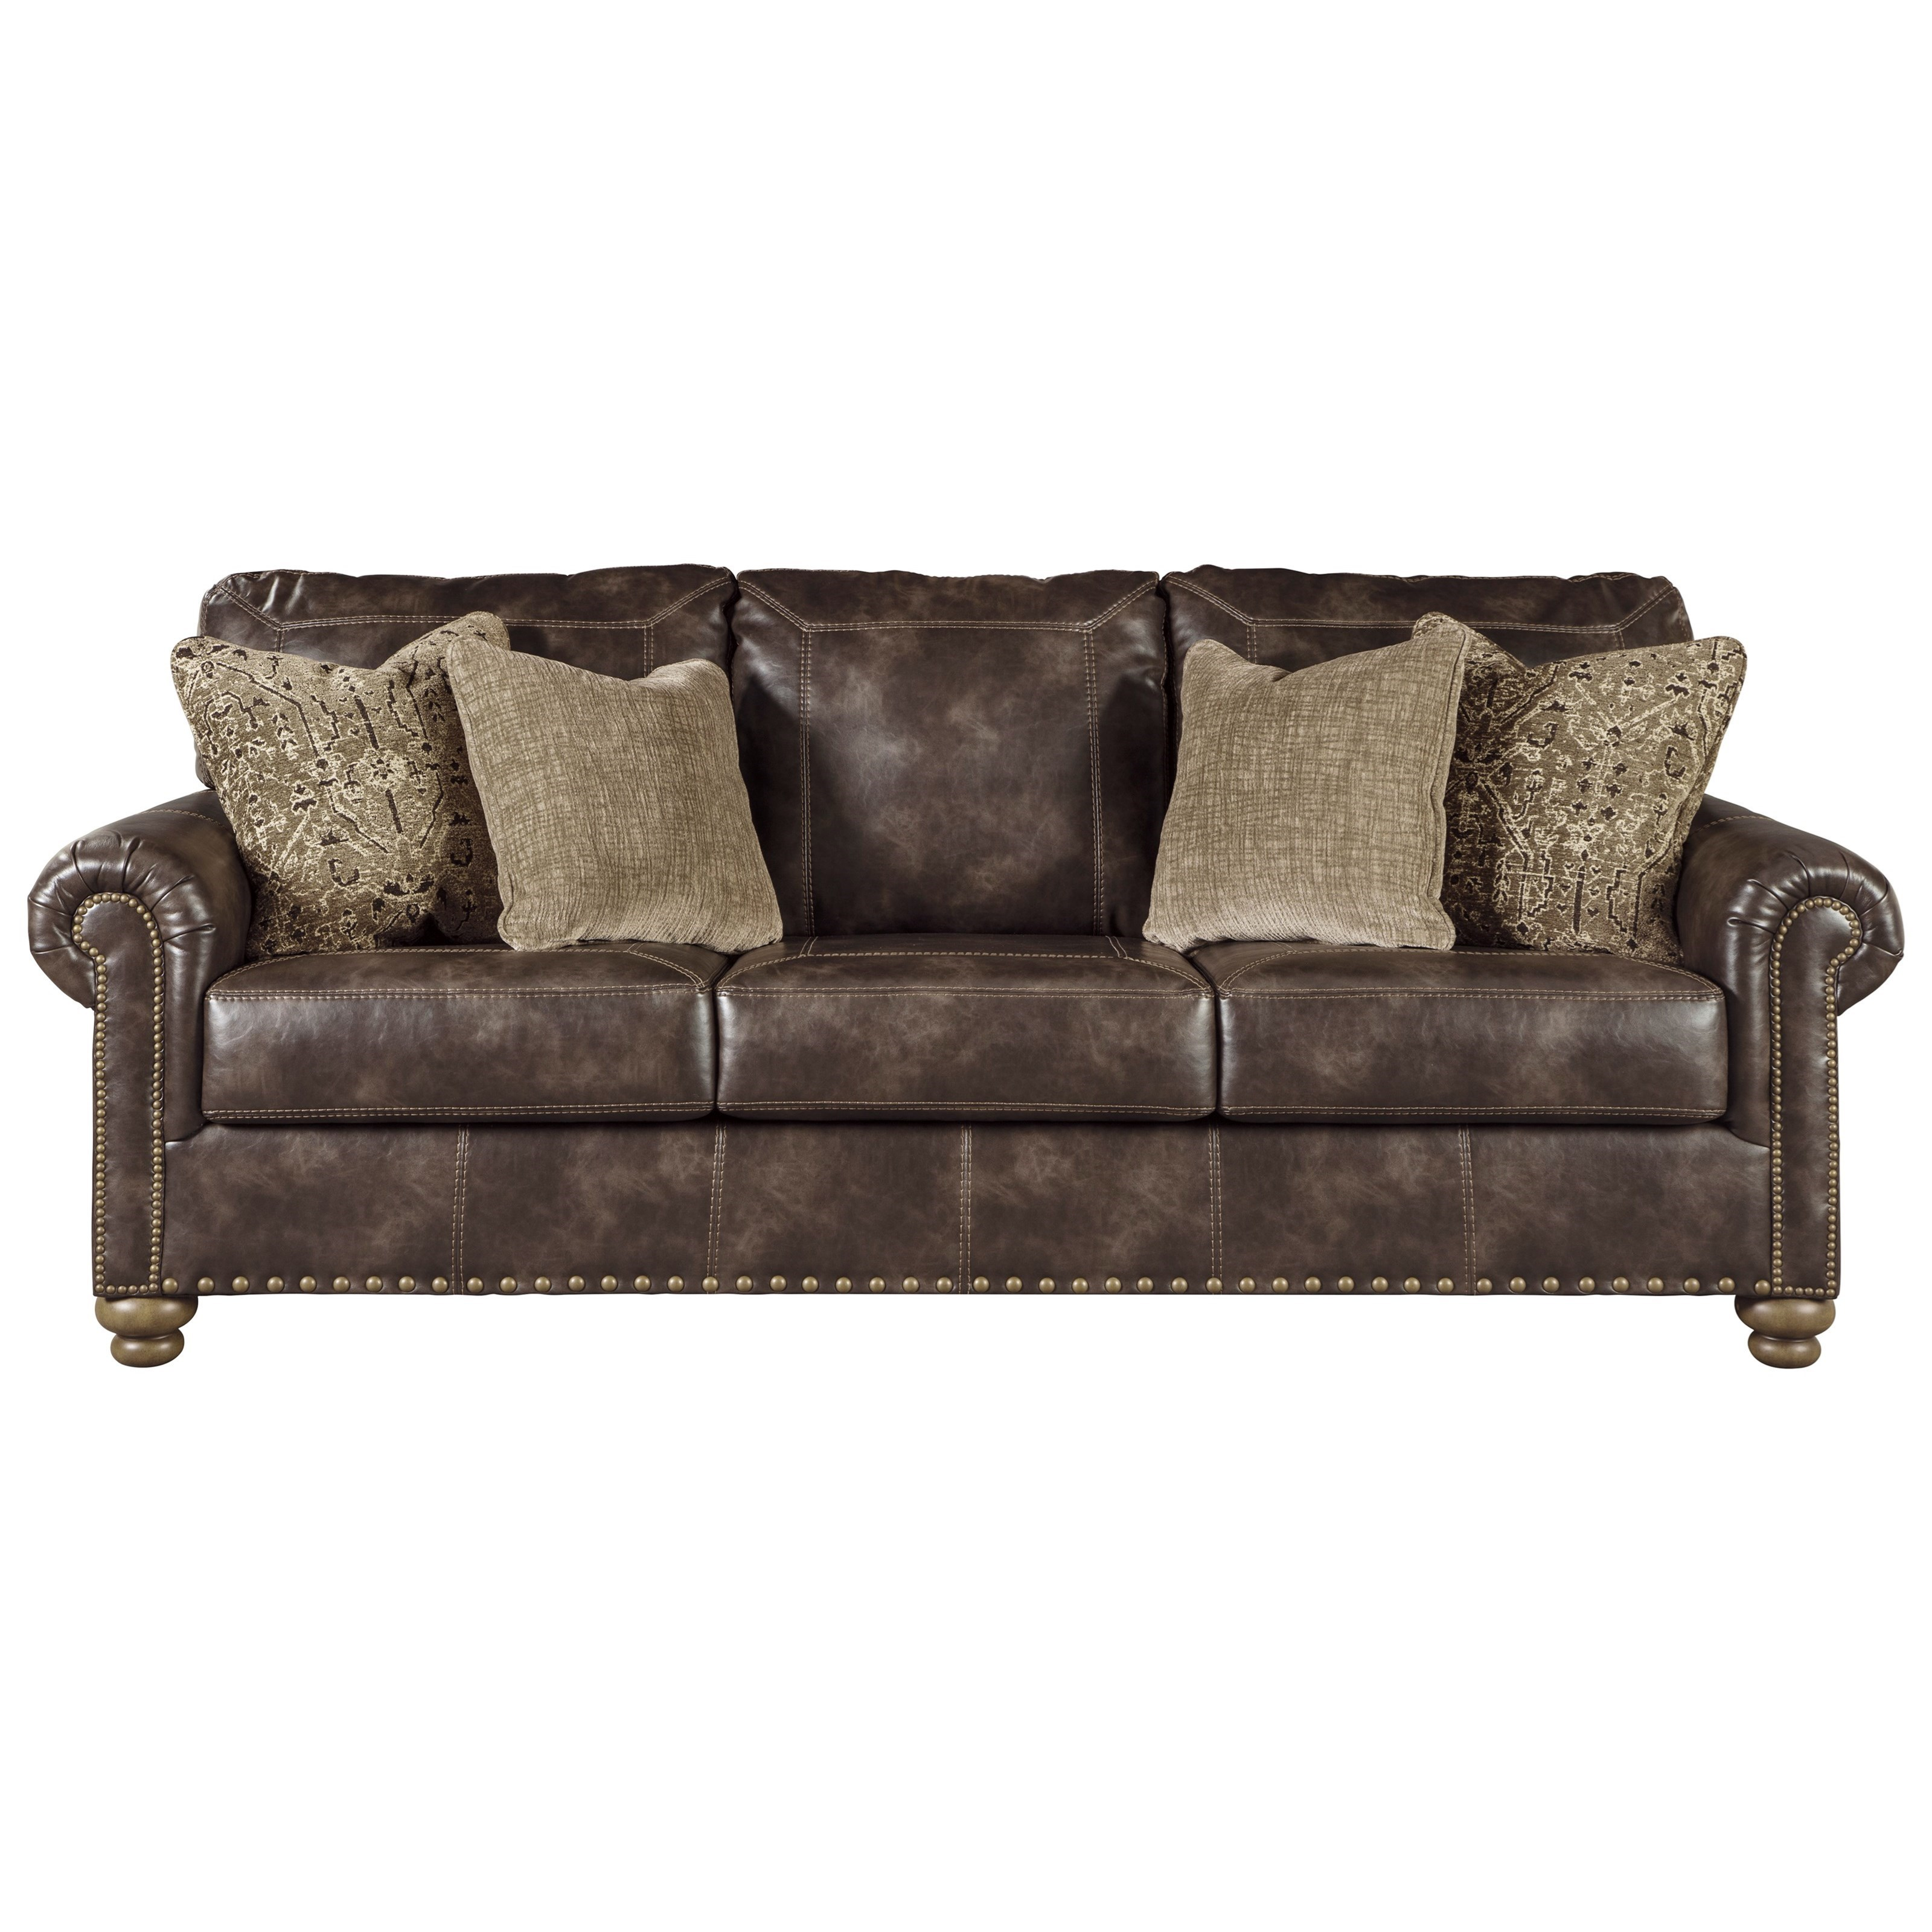 traditional sofa sleeper best price set queen with nailhead trim by